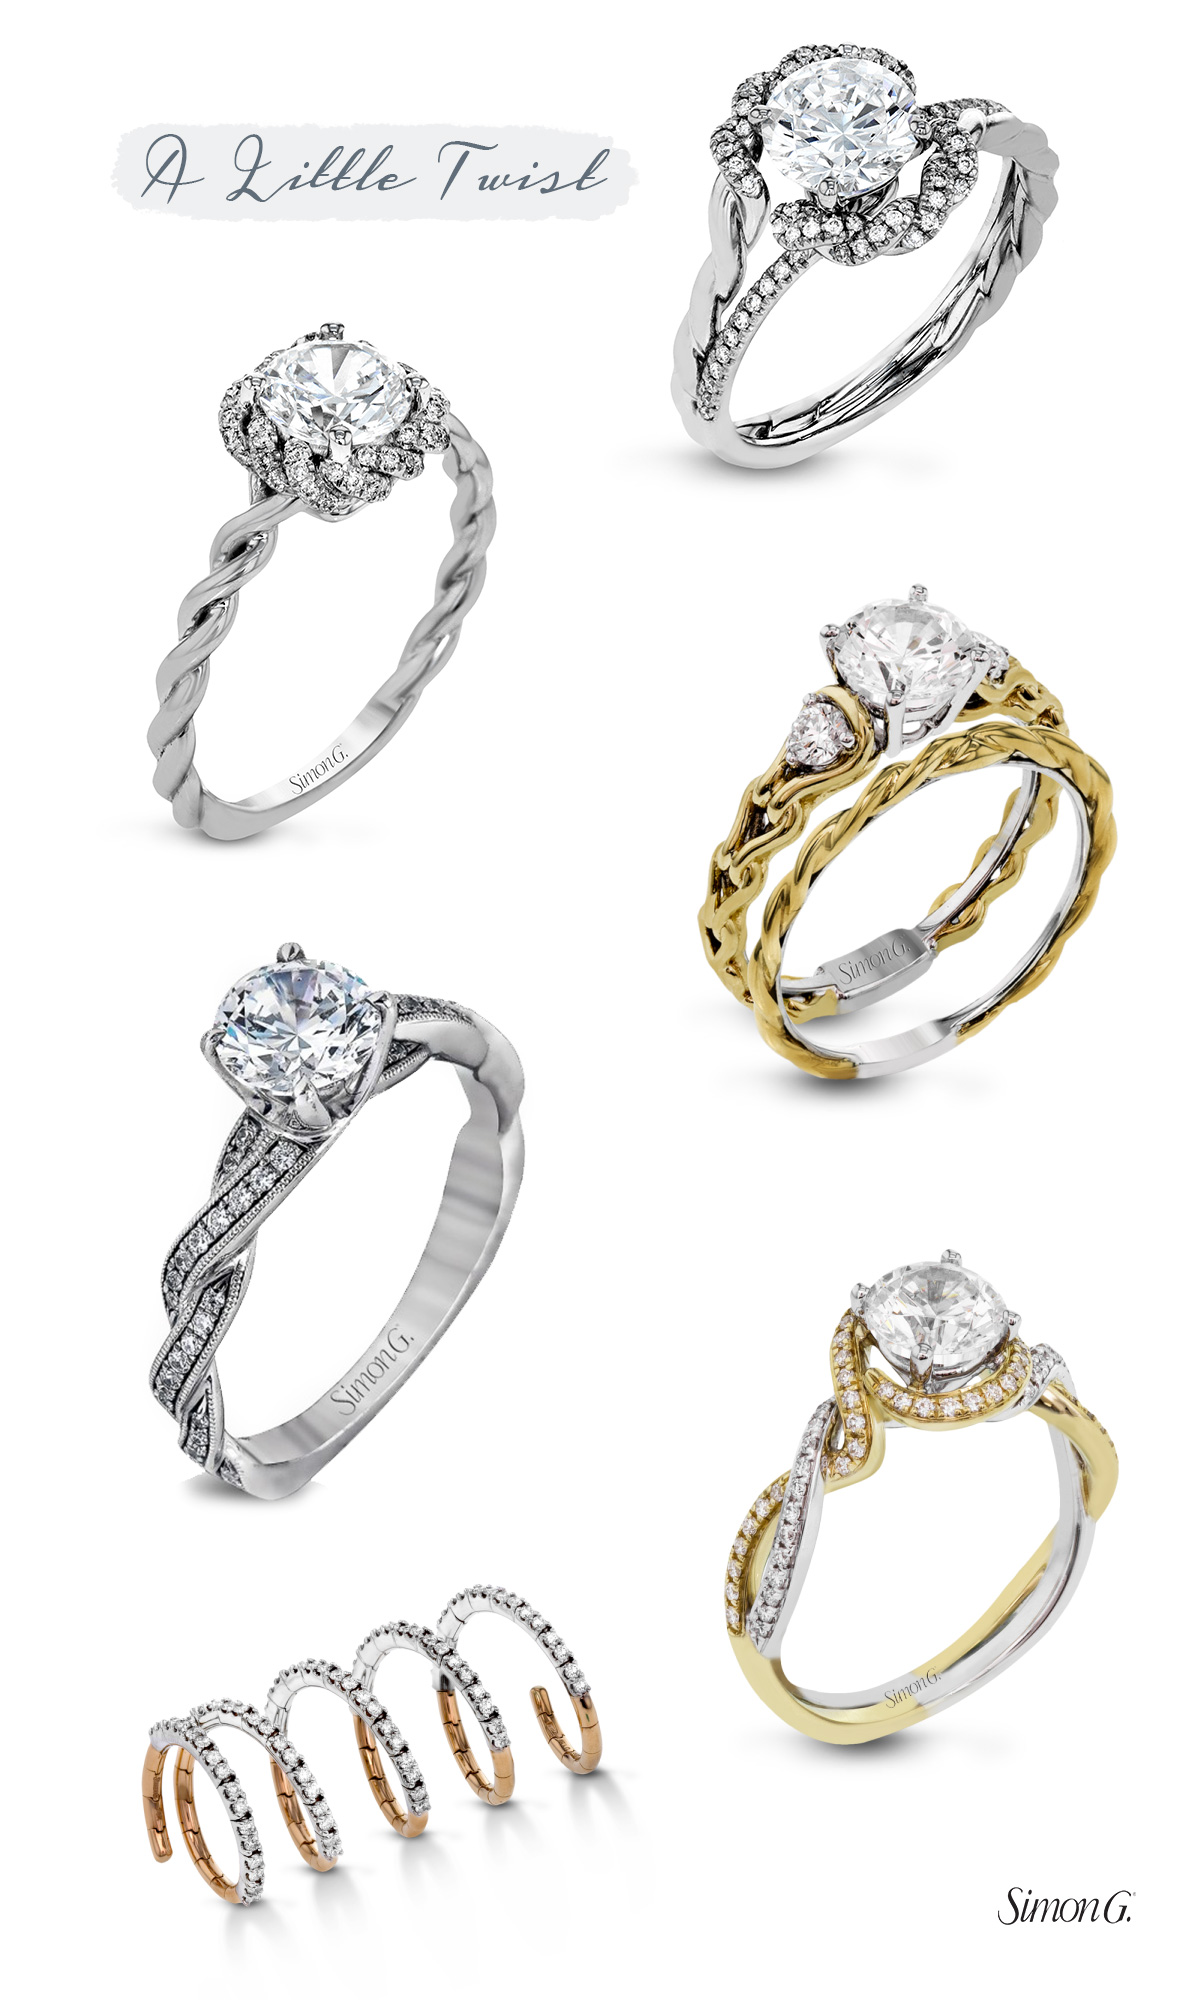 northern engagement d with rings tmp ireland solitaire jewellers ring platinum shoulders k diamond twist style